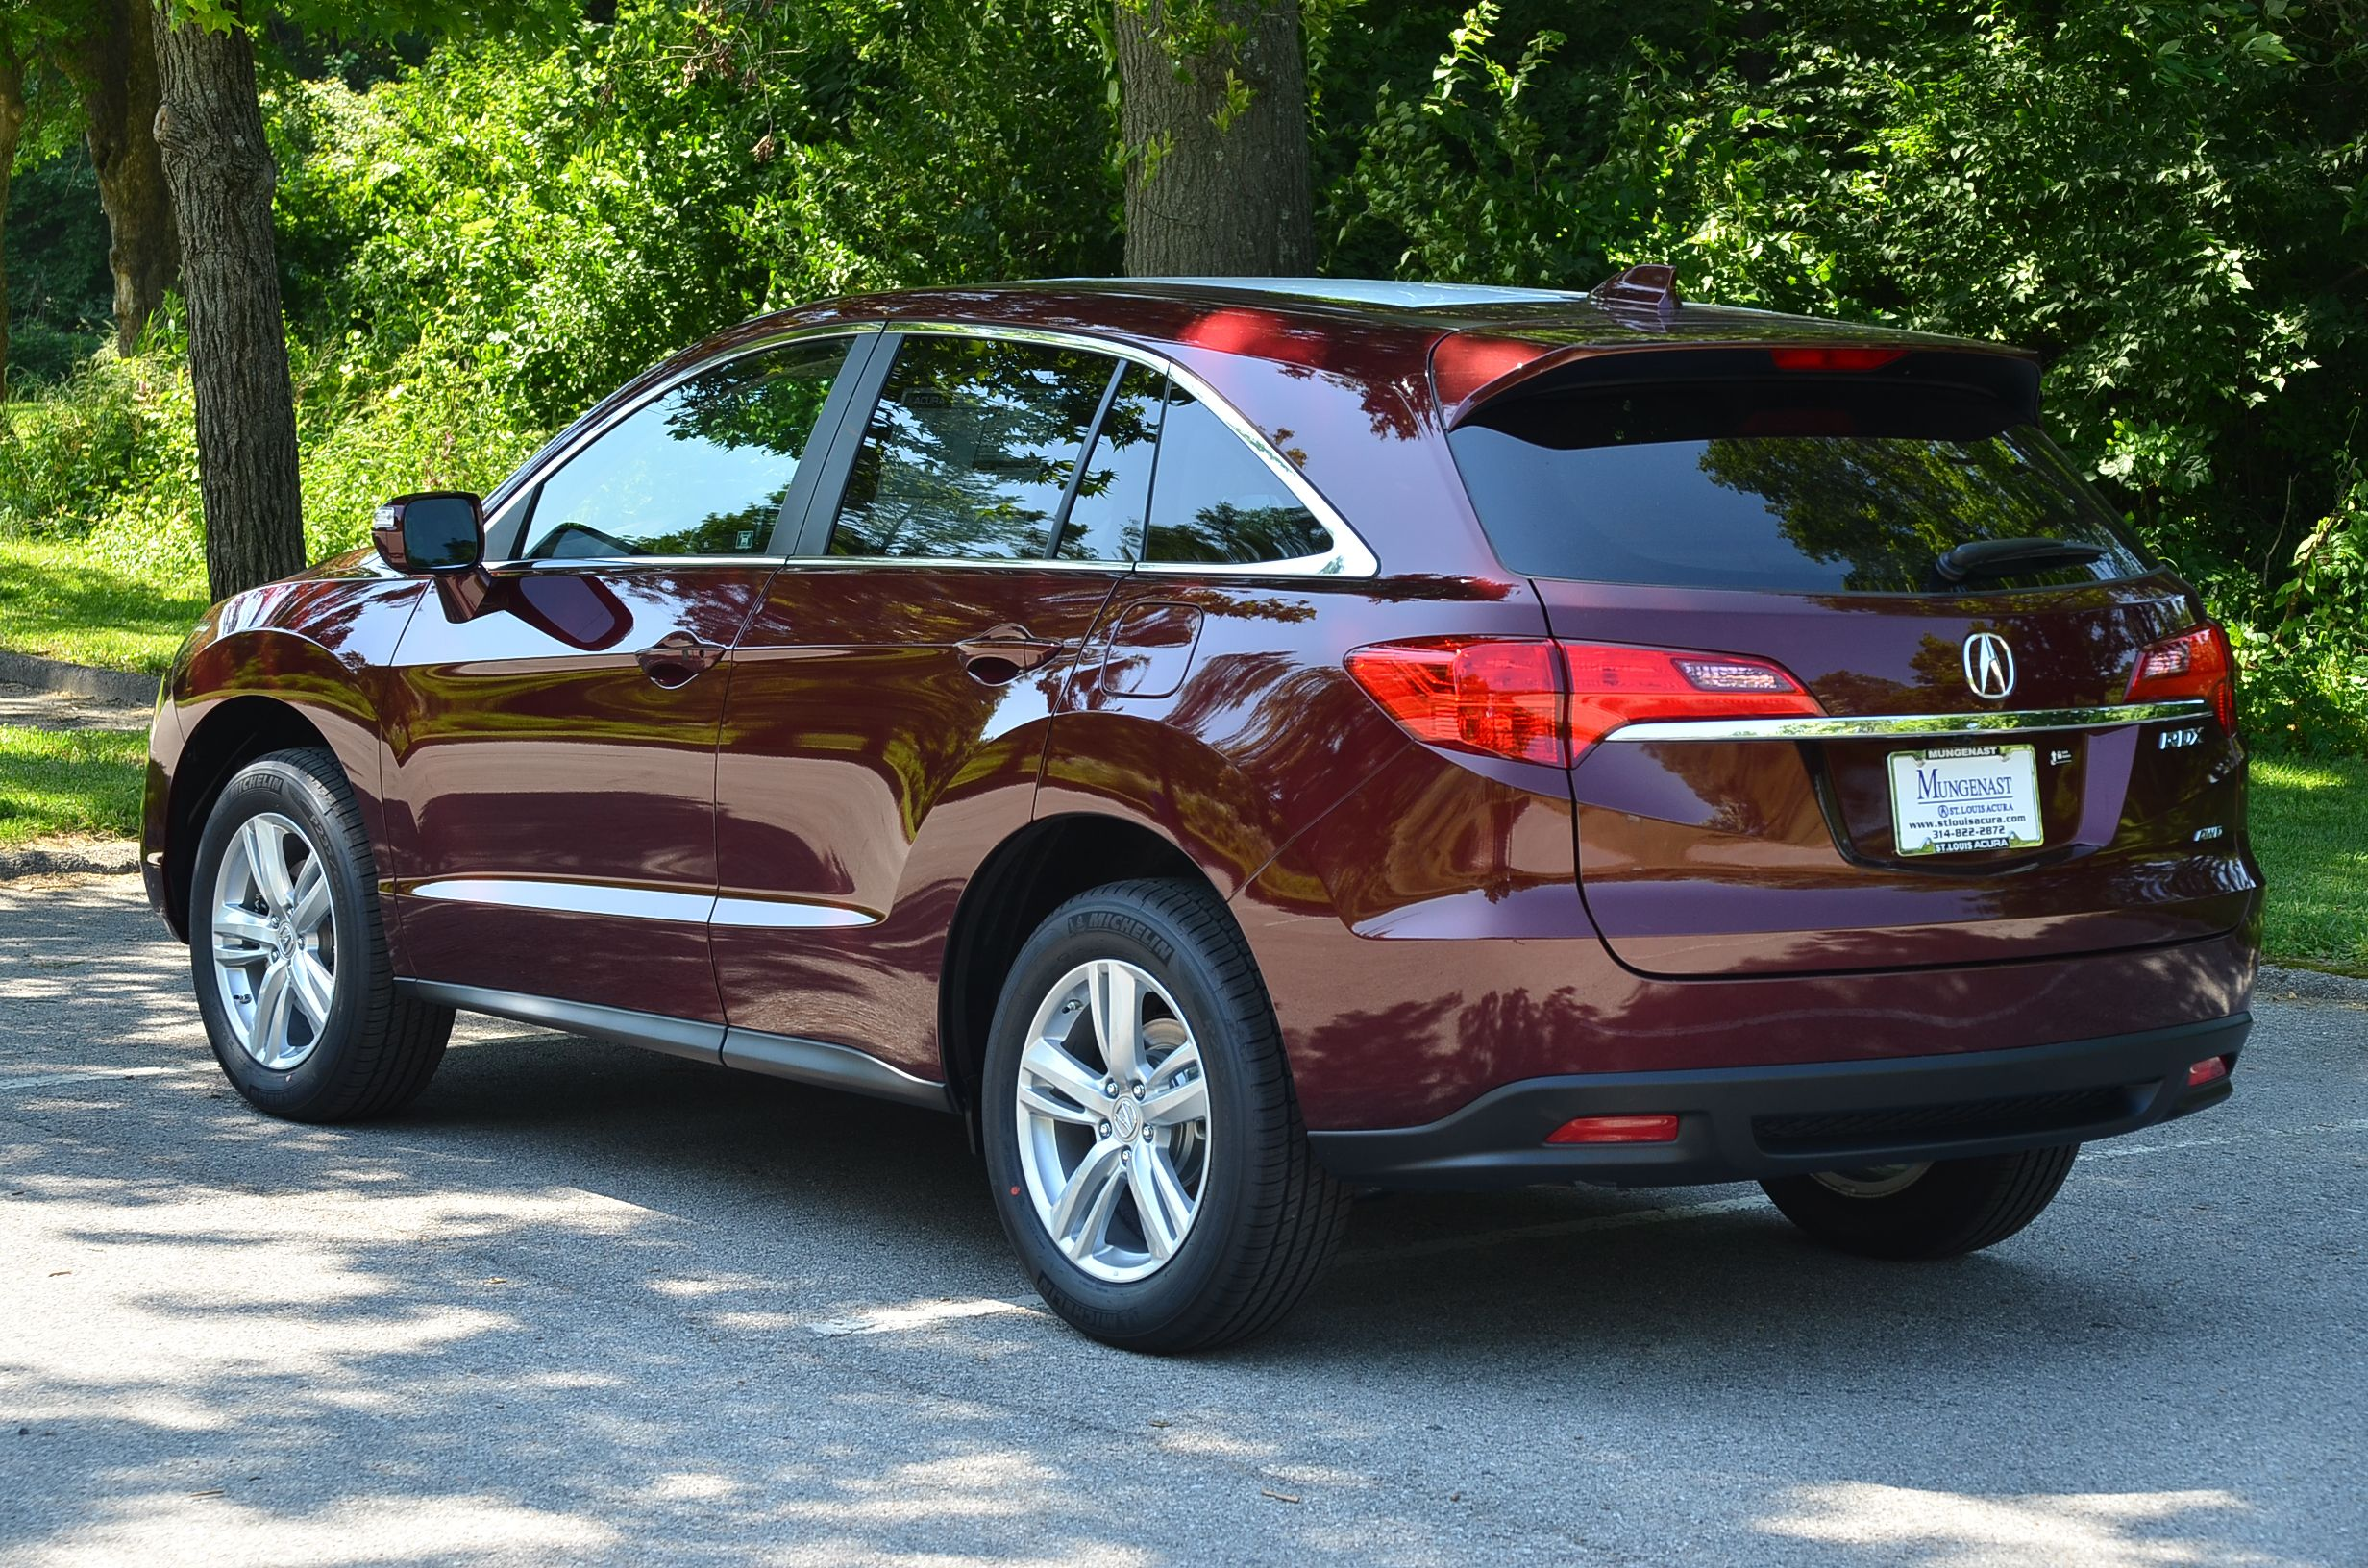 luster image blog in of com proctor graphite acura htm near tallahassee the metallic rdx june review courtesy